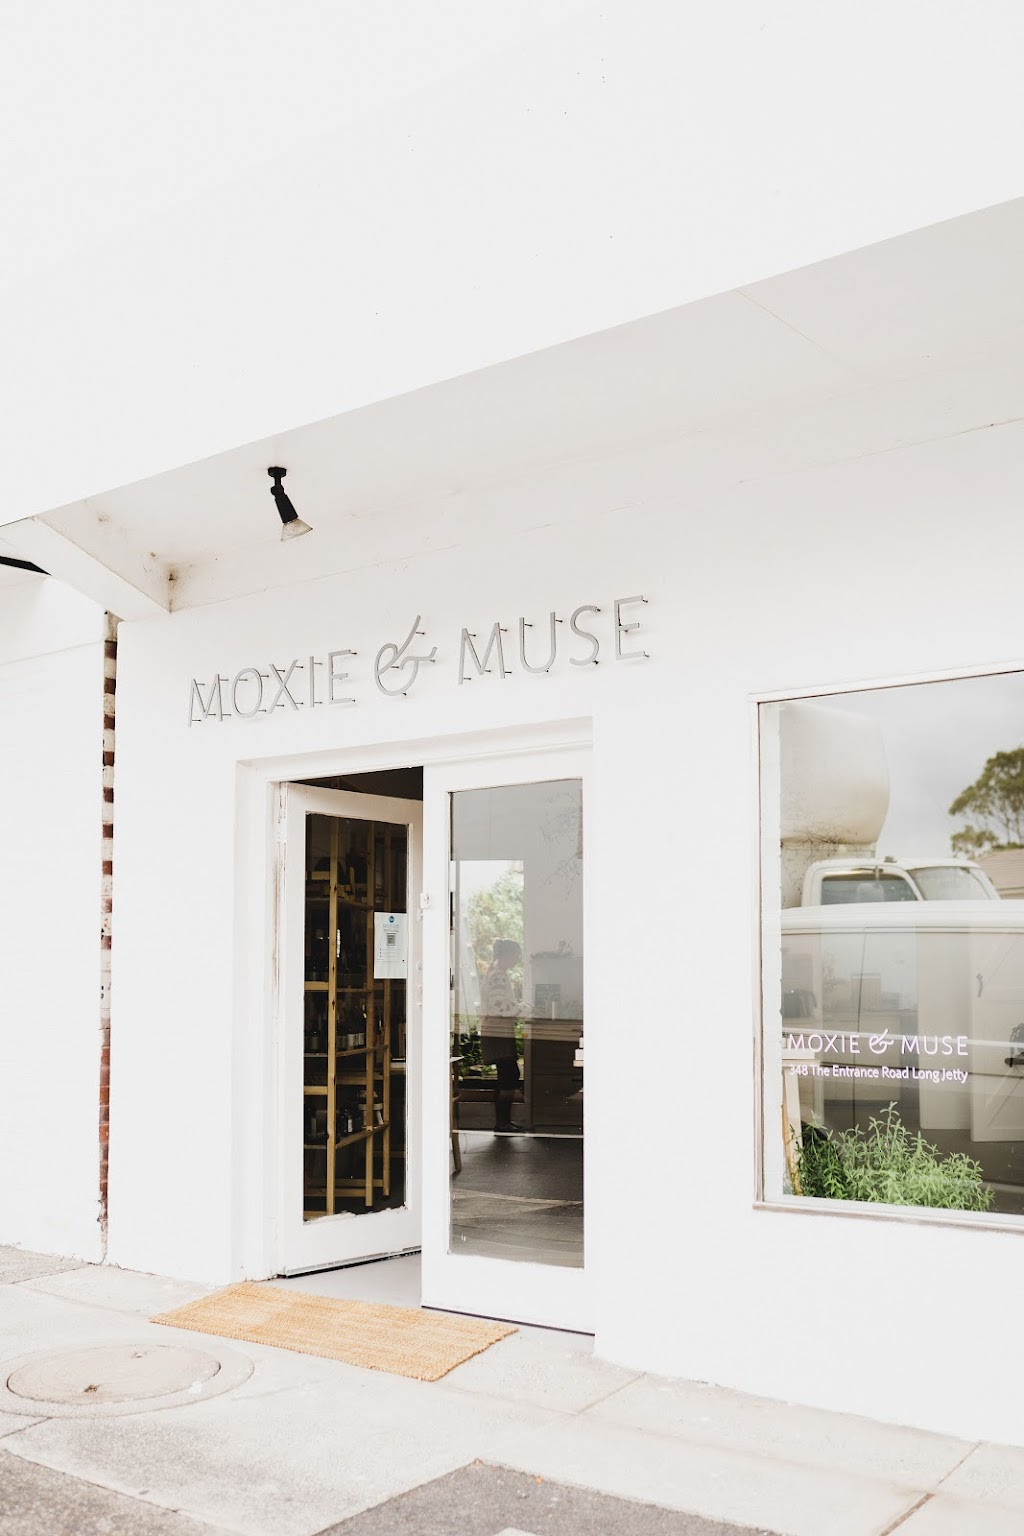 Moxie and Muse | hair care | 348 The Entrance Rd, Long Jetty NSW 2261, Australia | 0451232258 OR +61 451 232 258